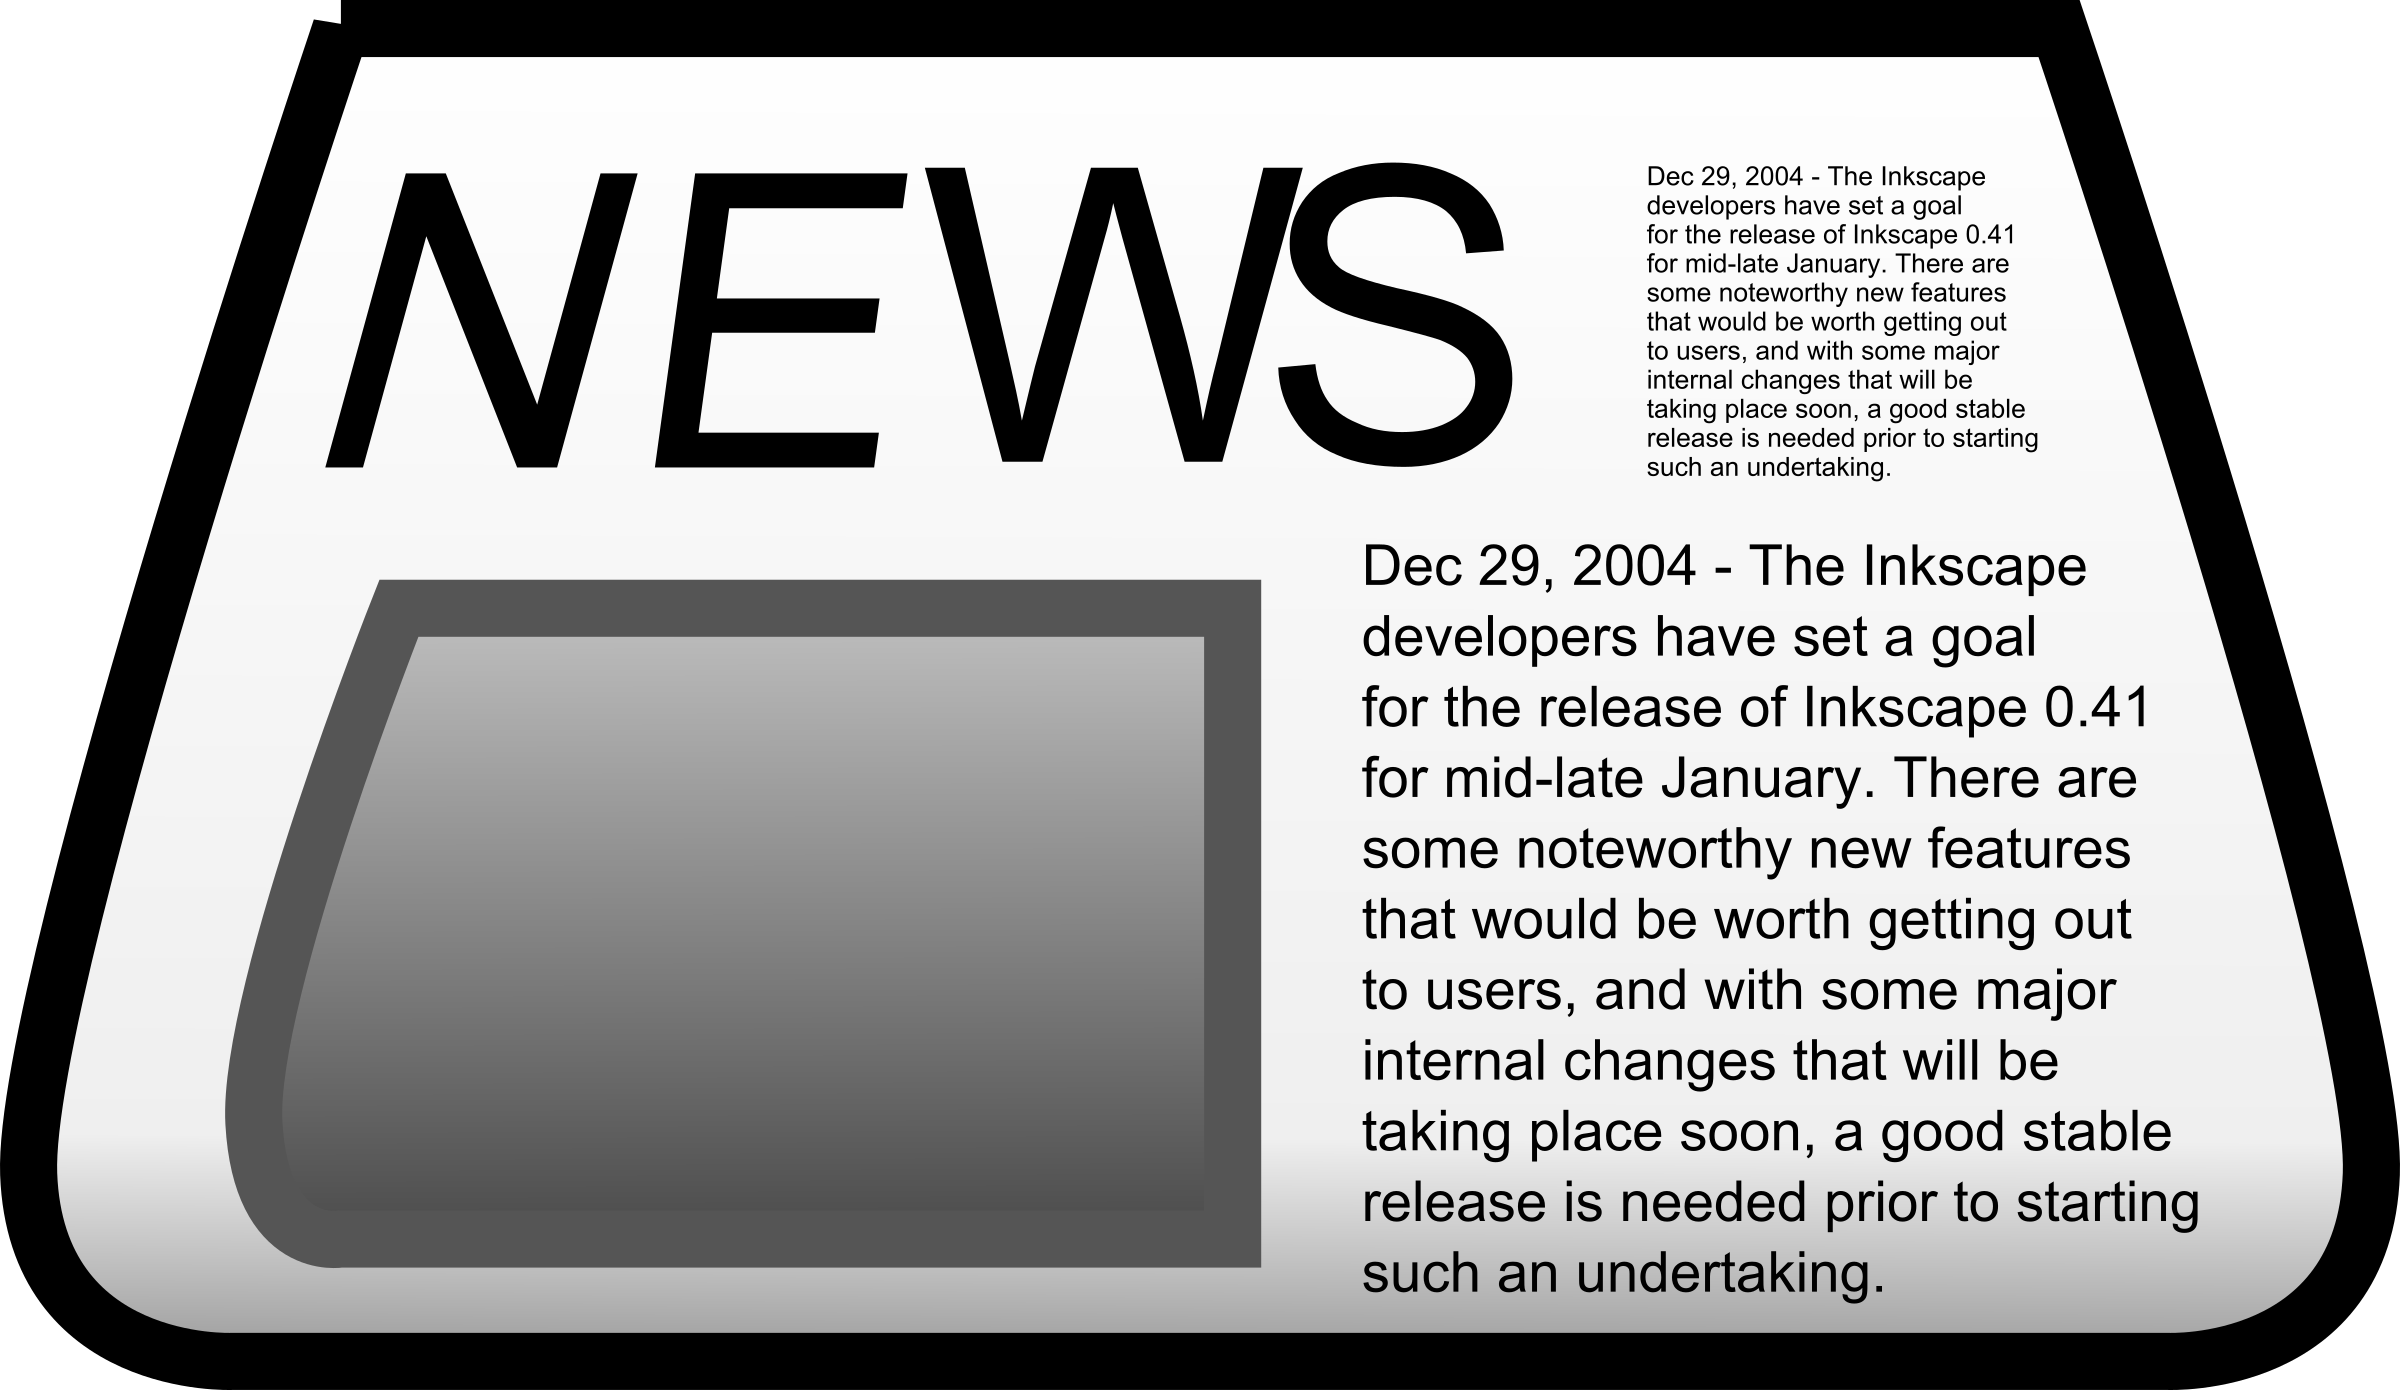 Newspaper clipart edition. Big image png